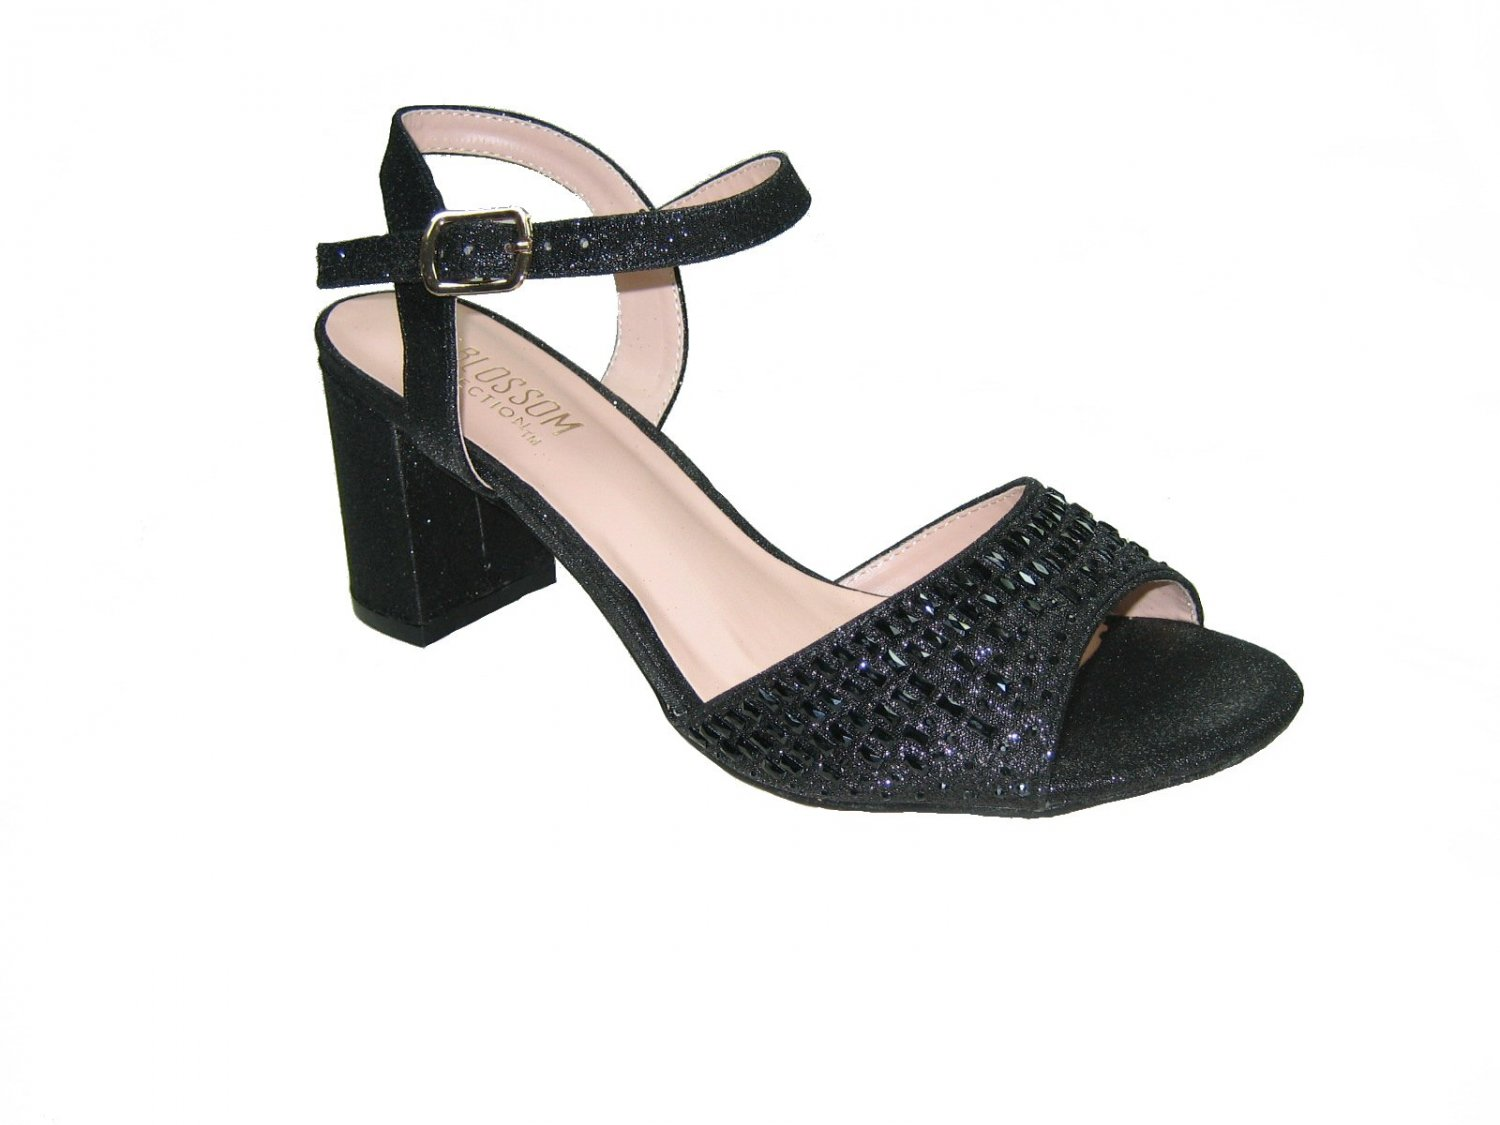 Blossom amber-9 strappy black sparkle shimmer 3 inch block heel party sandals size 8.5